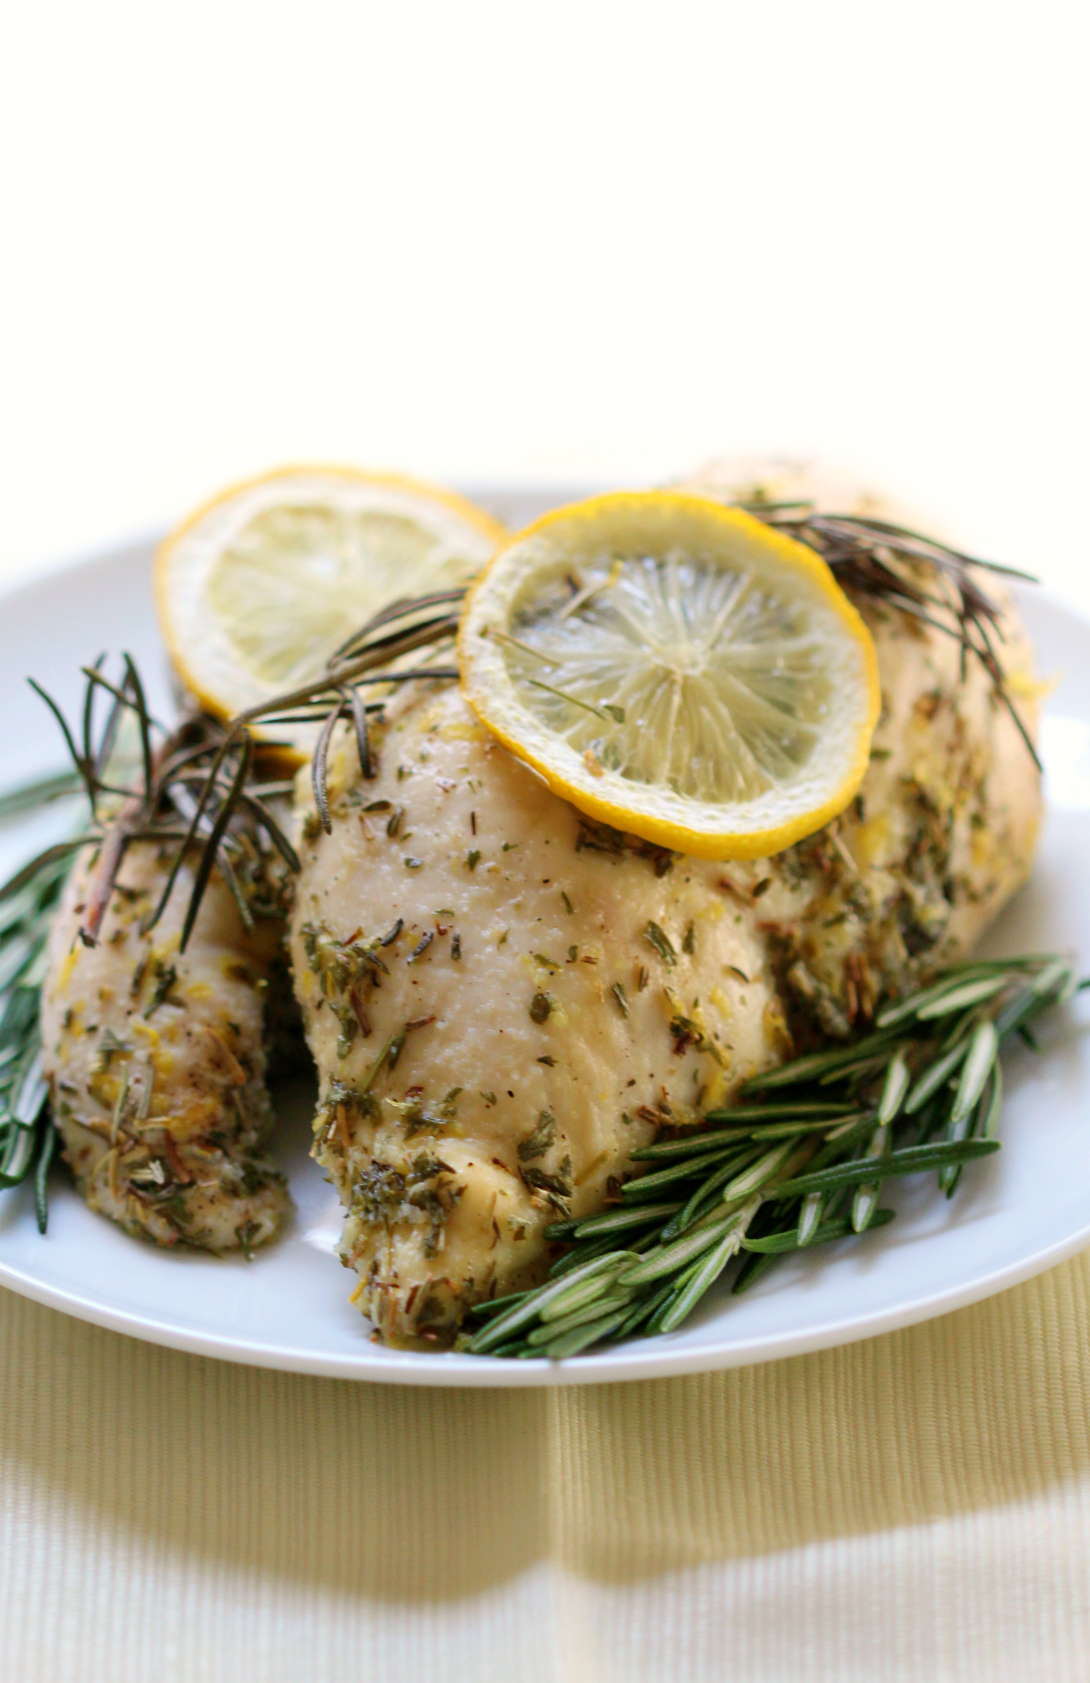 Perfectly baked and zesty lemon rosemary chicken breasts for an easy weeknight dinner recipe. A quick gluten-free and paleo option to flavor up bland chicken with just two simple ingredients! Paired with savory paprika oregano roasted acorn squash and you have a complete family meal!